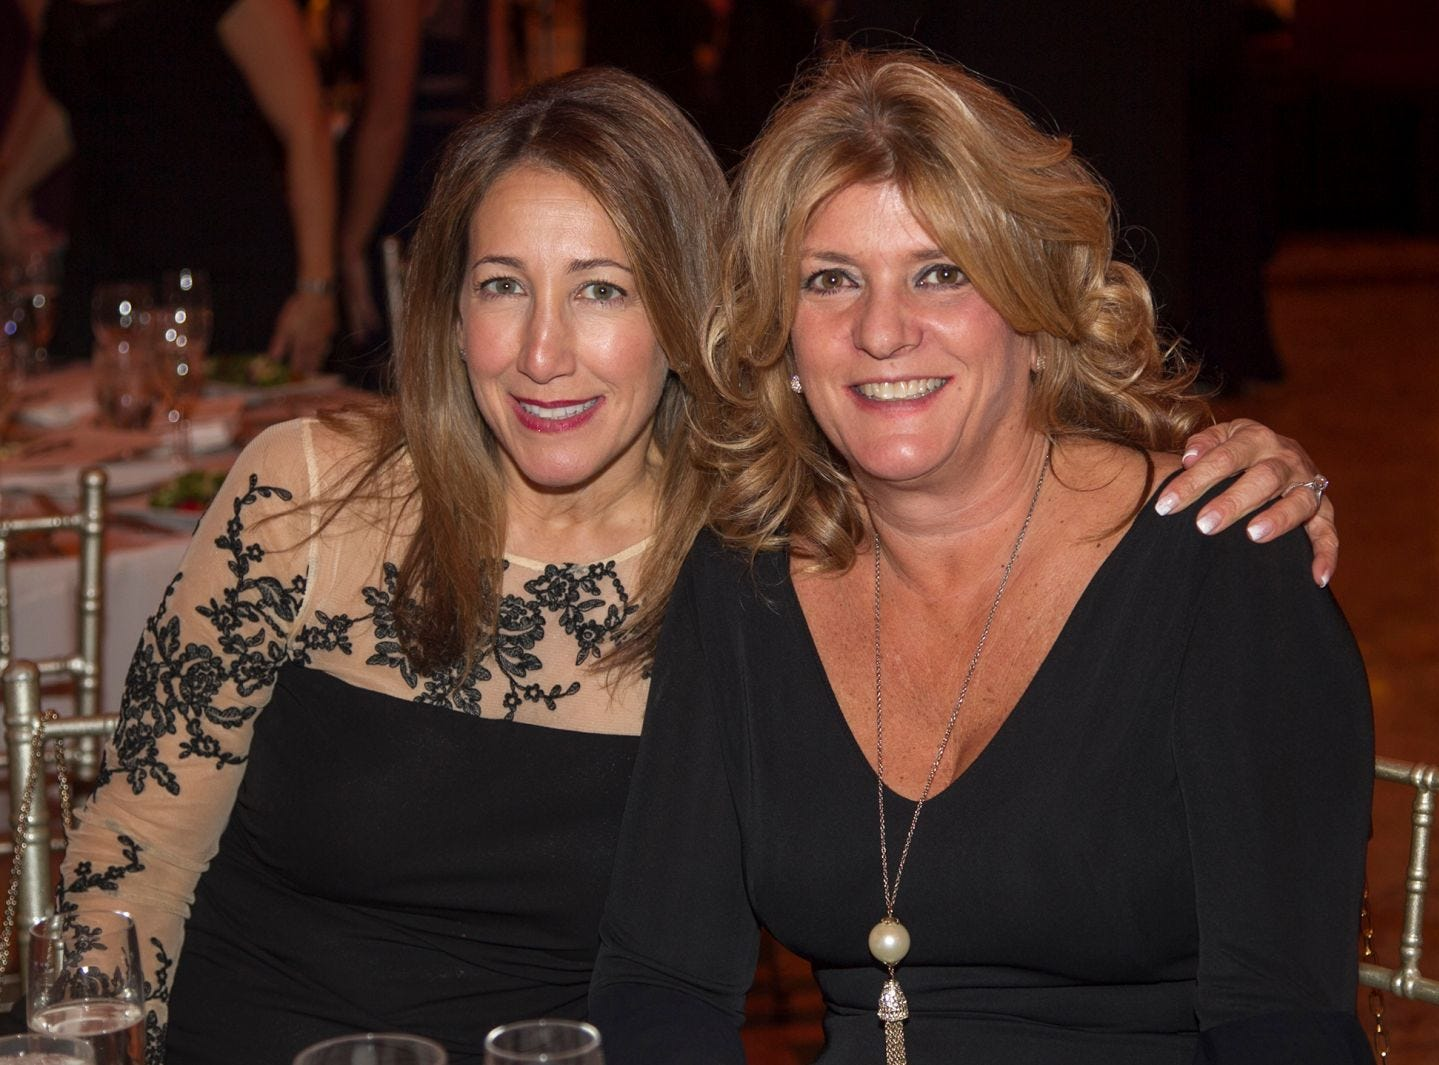 Barbara Makris, Angela Morfogen. Saint John the Theologian 50th Anniversary gala Dinner at The Venetian in Garfield. 10/04/2018